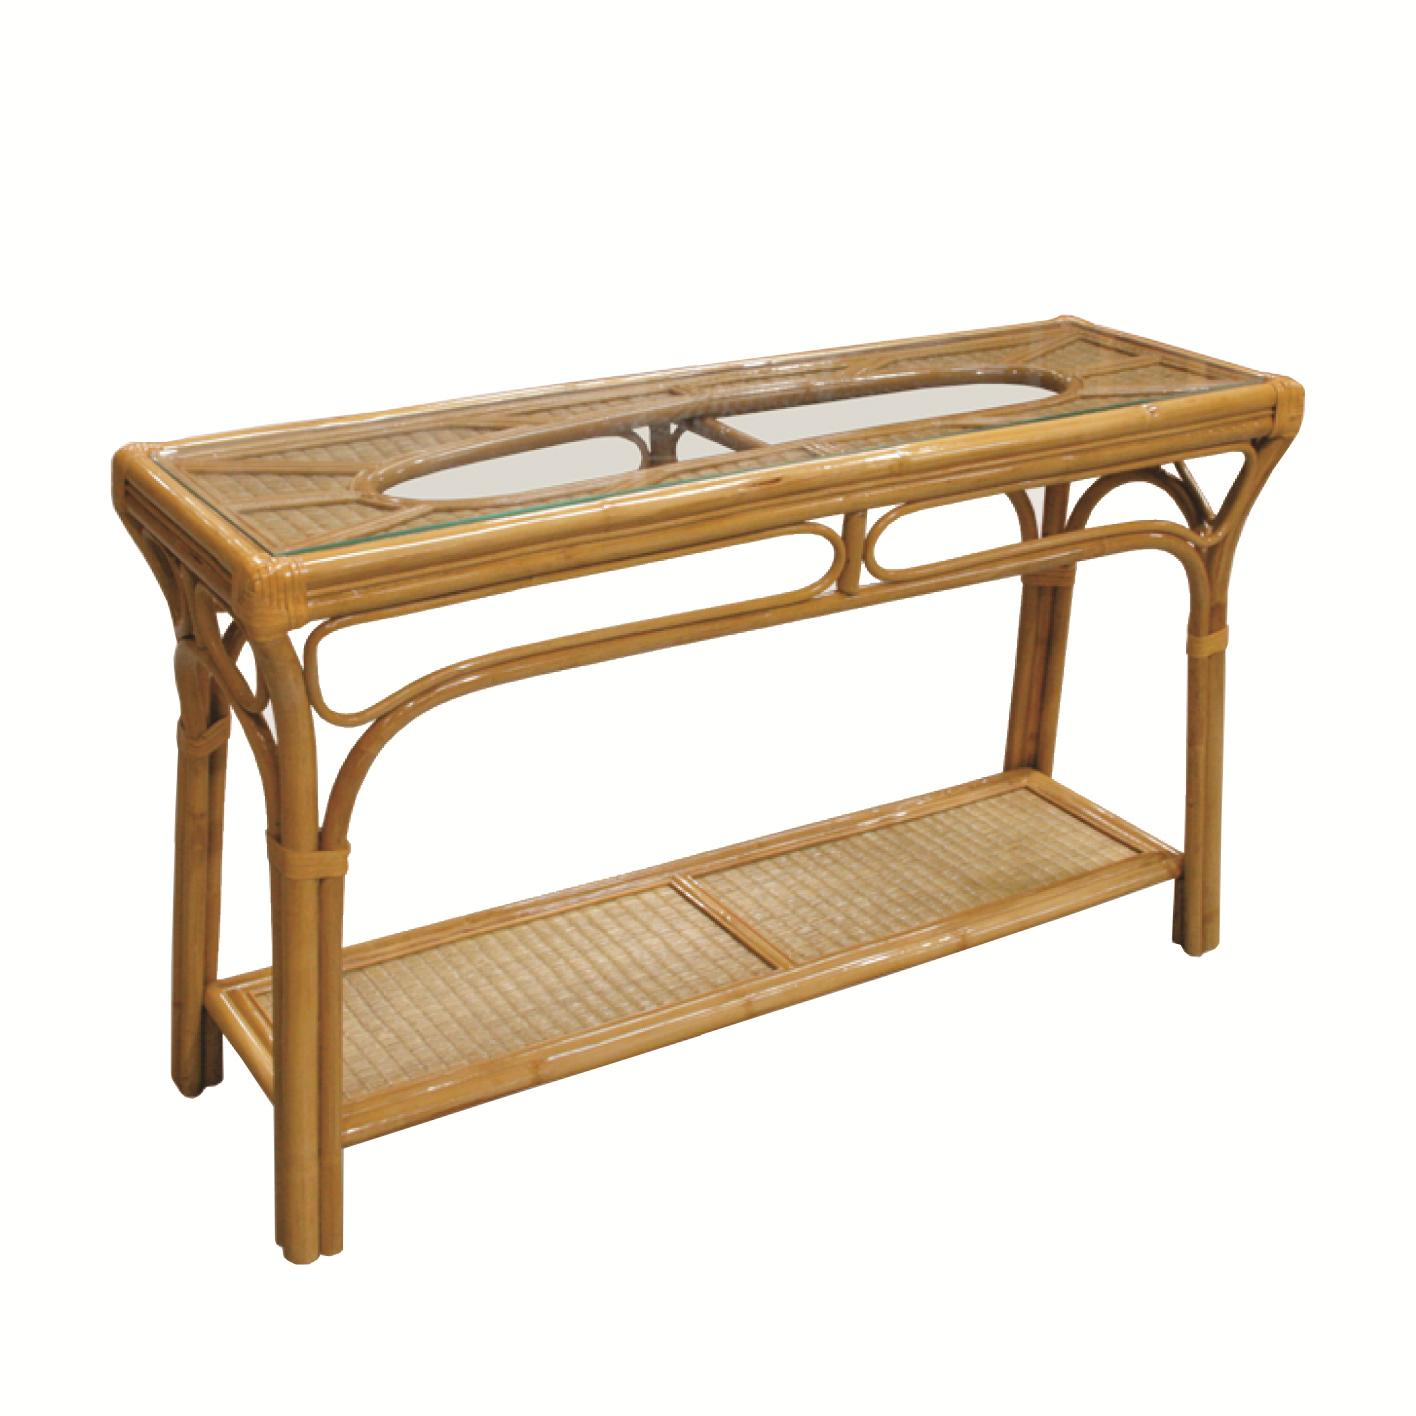 381 Collection Sofa Table by Capris Furniture at Esprit Decor Home Furnishings